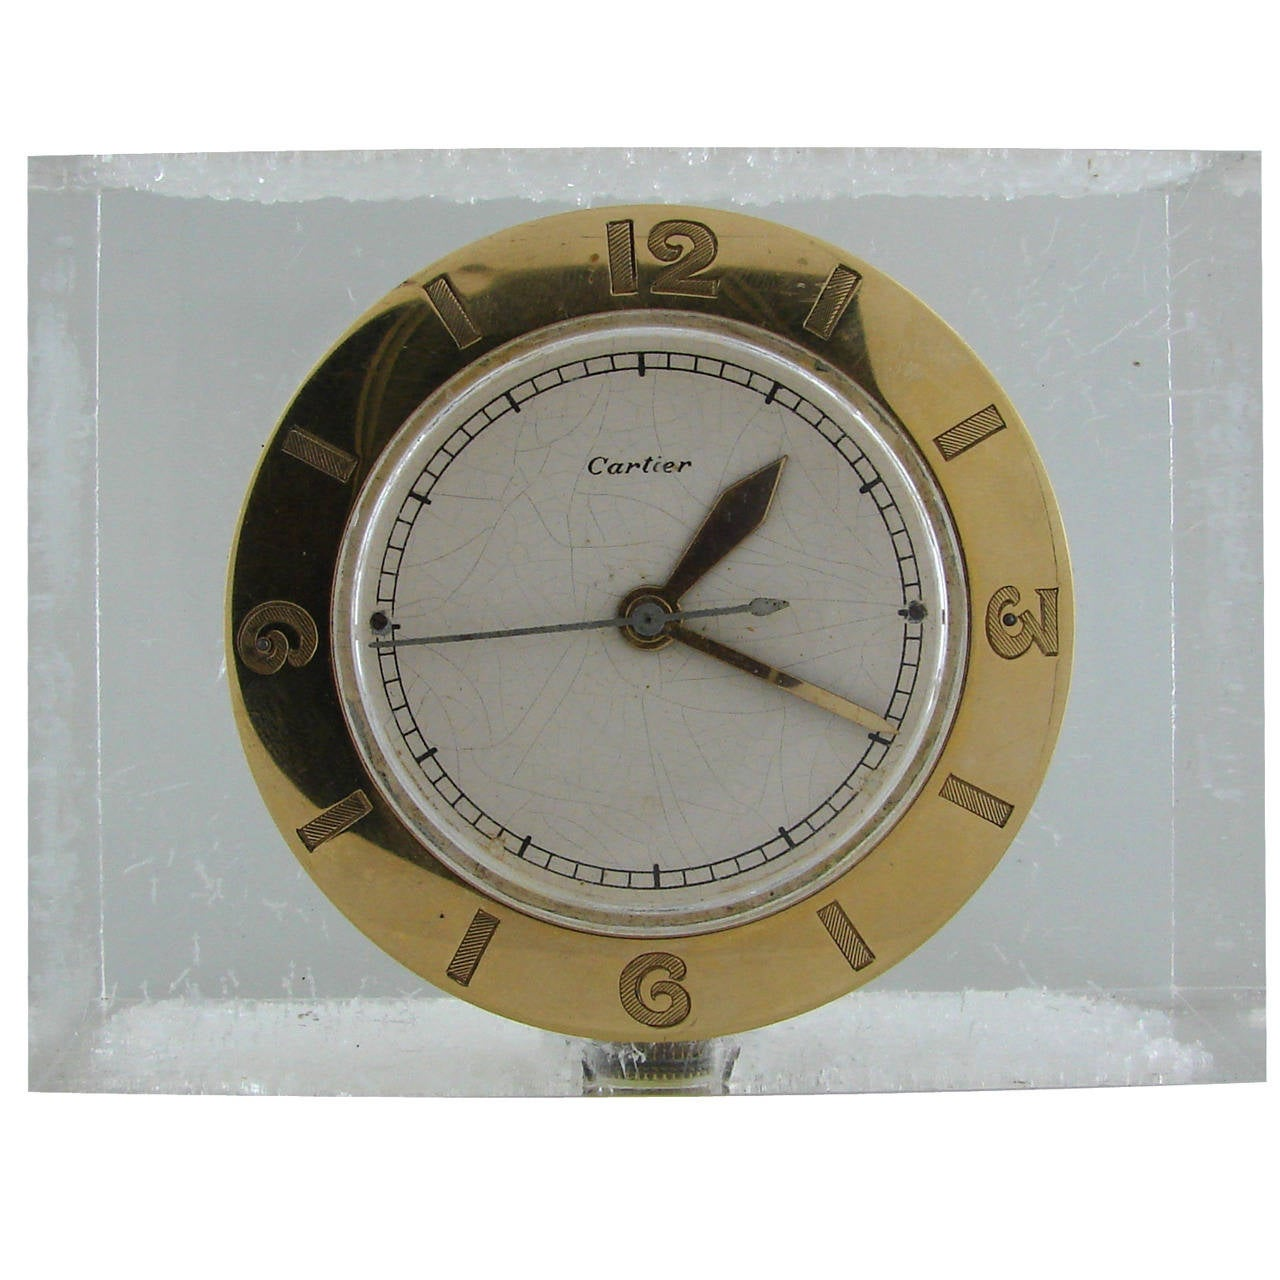 Cartier Lucite and Yellow Gold Desk Clock with Lecoultre Movement circa  1950s For Sale - Cartier Lucite And Yellow Gold Desk Clock With Lecoultre Movement